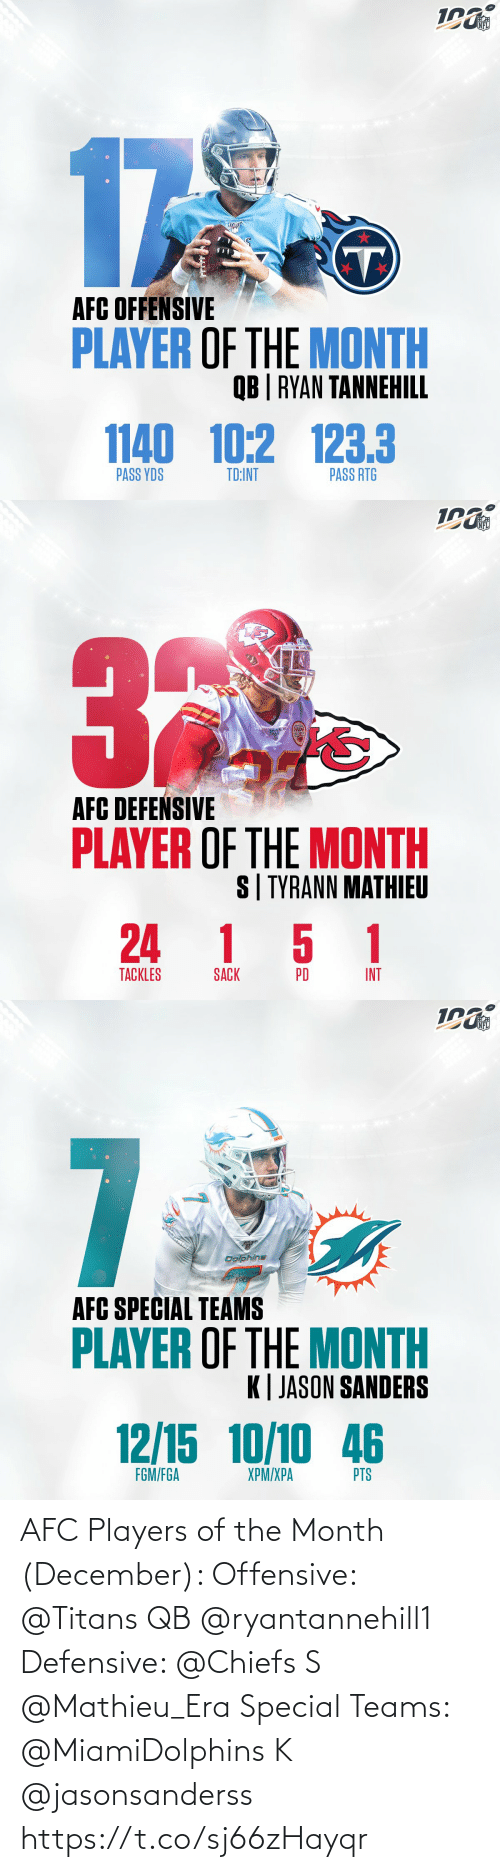 pass: NFL  17  AFC OFFENSIVE  PLAYER OF THE MONTH  QB | RYAN TANNEHILL  1140 10:2 123.3  PASS RTG  PASS YDS  TD:INT   NFL  AFC DEFEŃSIVE  PLAYER OF THE MONTH  S| TYRANN MATHIEU  24 1 5 1  TACKLES  INT  PD  SACK   NFL  7  Dolphins  AFC SPECIAL TEAMS  PLAYER OF THE MONTH  K| JASON SANDERS  12/15 10/10 46  FGM/FGA  XPM/XPA  PTS AFC Players of the Month (December):   Offensive: @Titans QB @ryantannehill1    Defensive: @Chiefs S @Mathieu_Era   Special Teams: @MiamiDolphins K @jasonsanderss https://t.co/sj66zHayqr